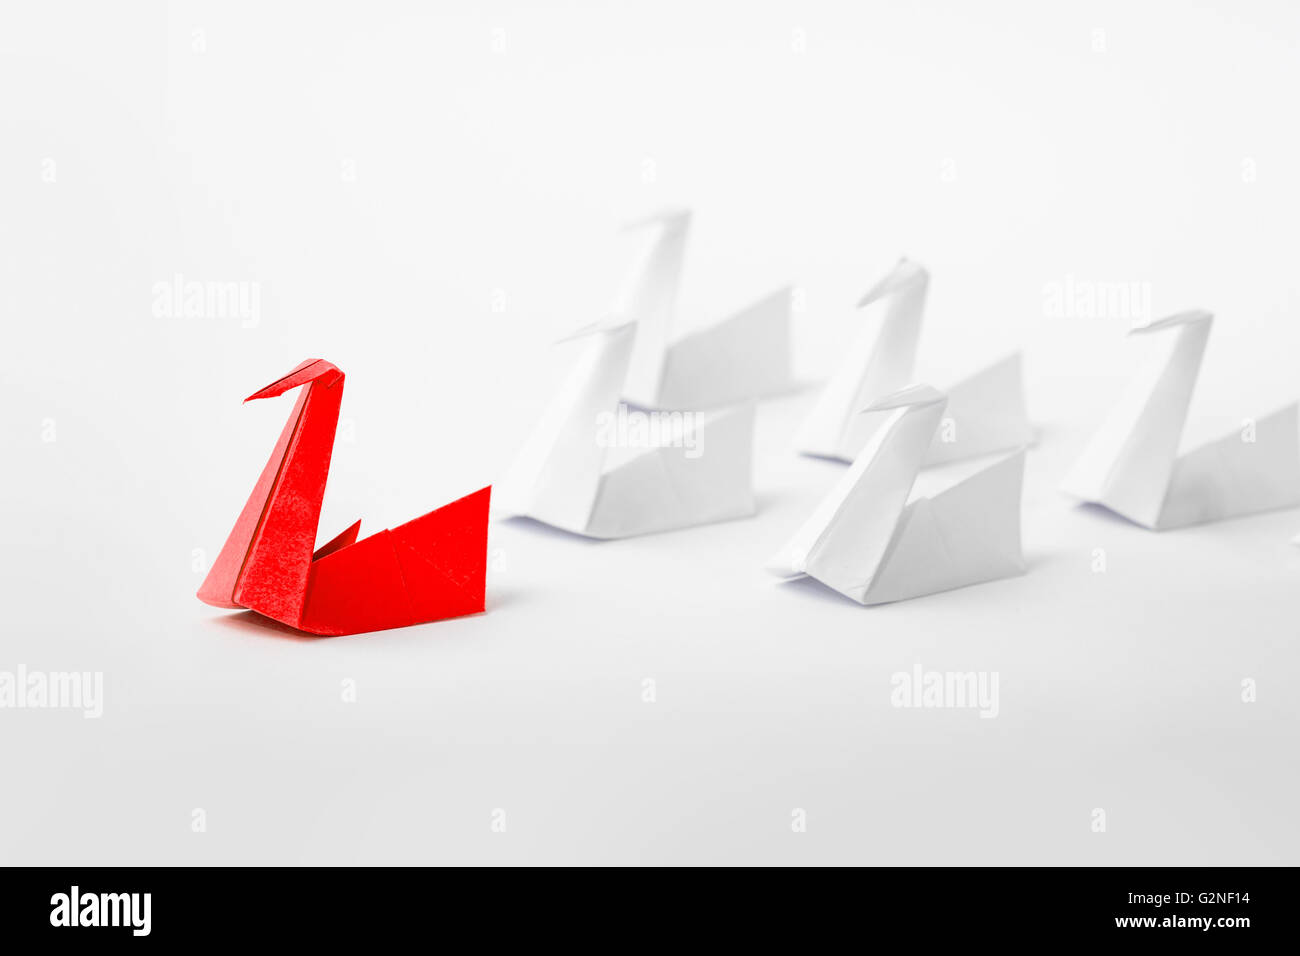 Leadership concept with origami paper bird leading among white. - Stock Image